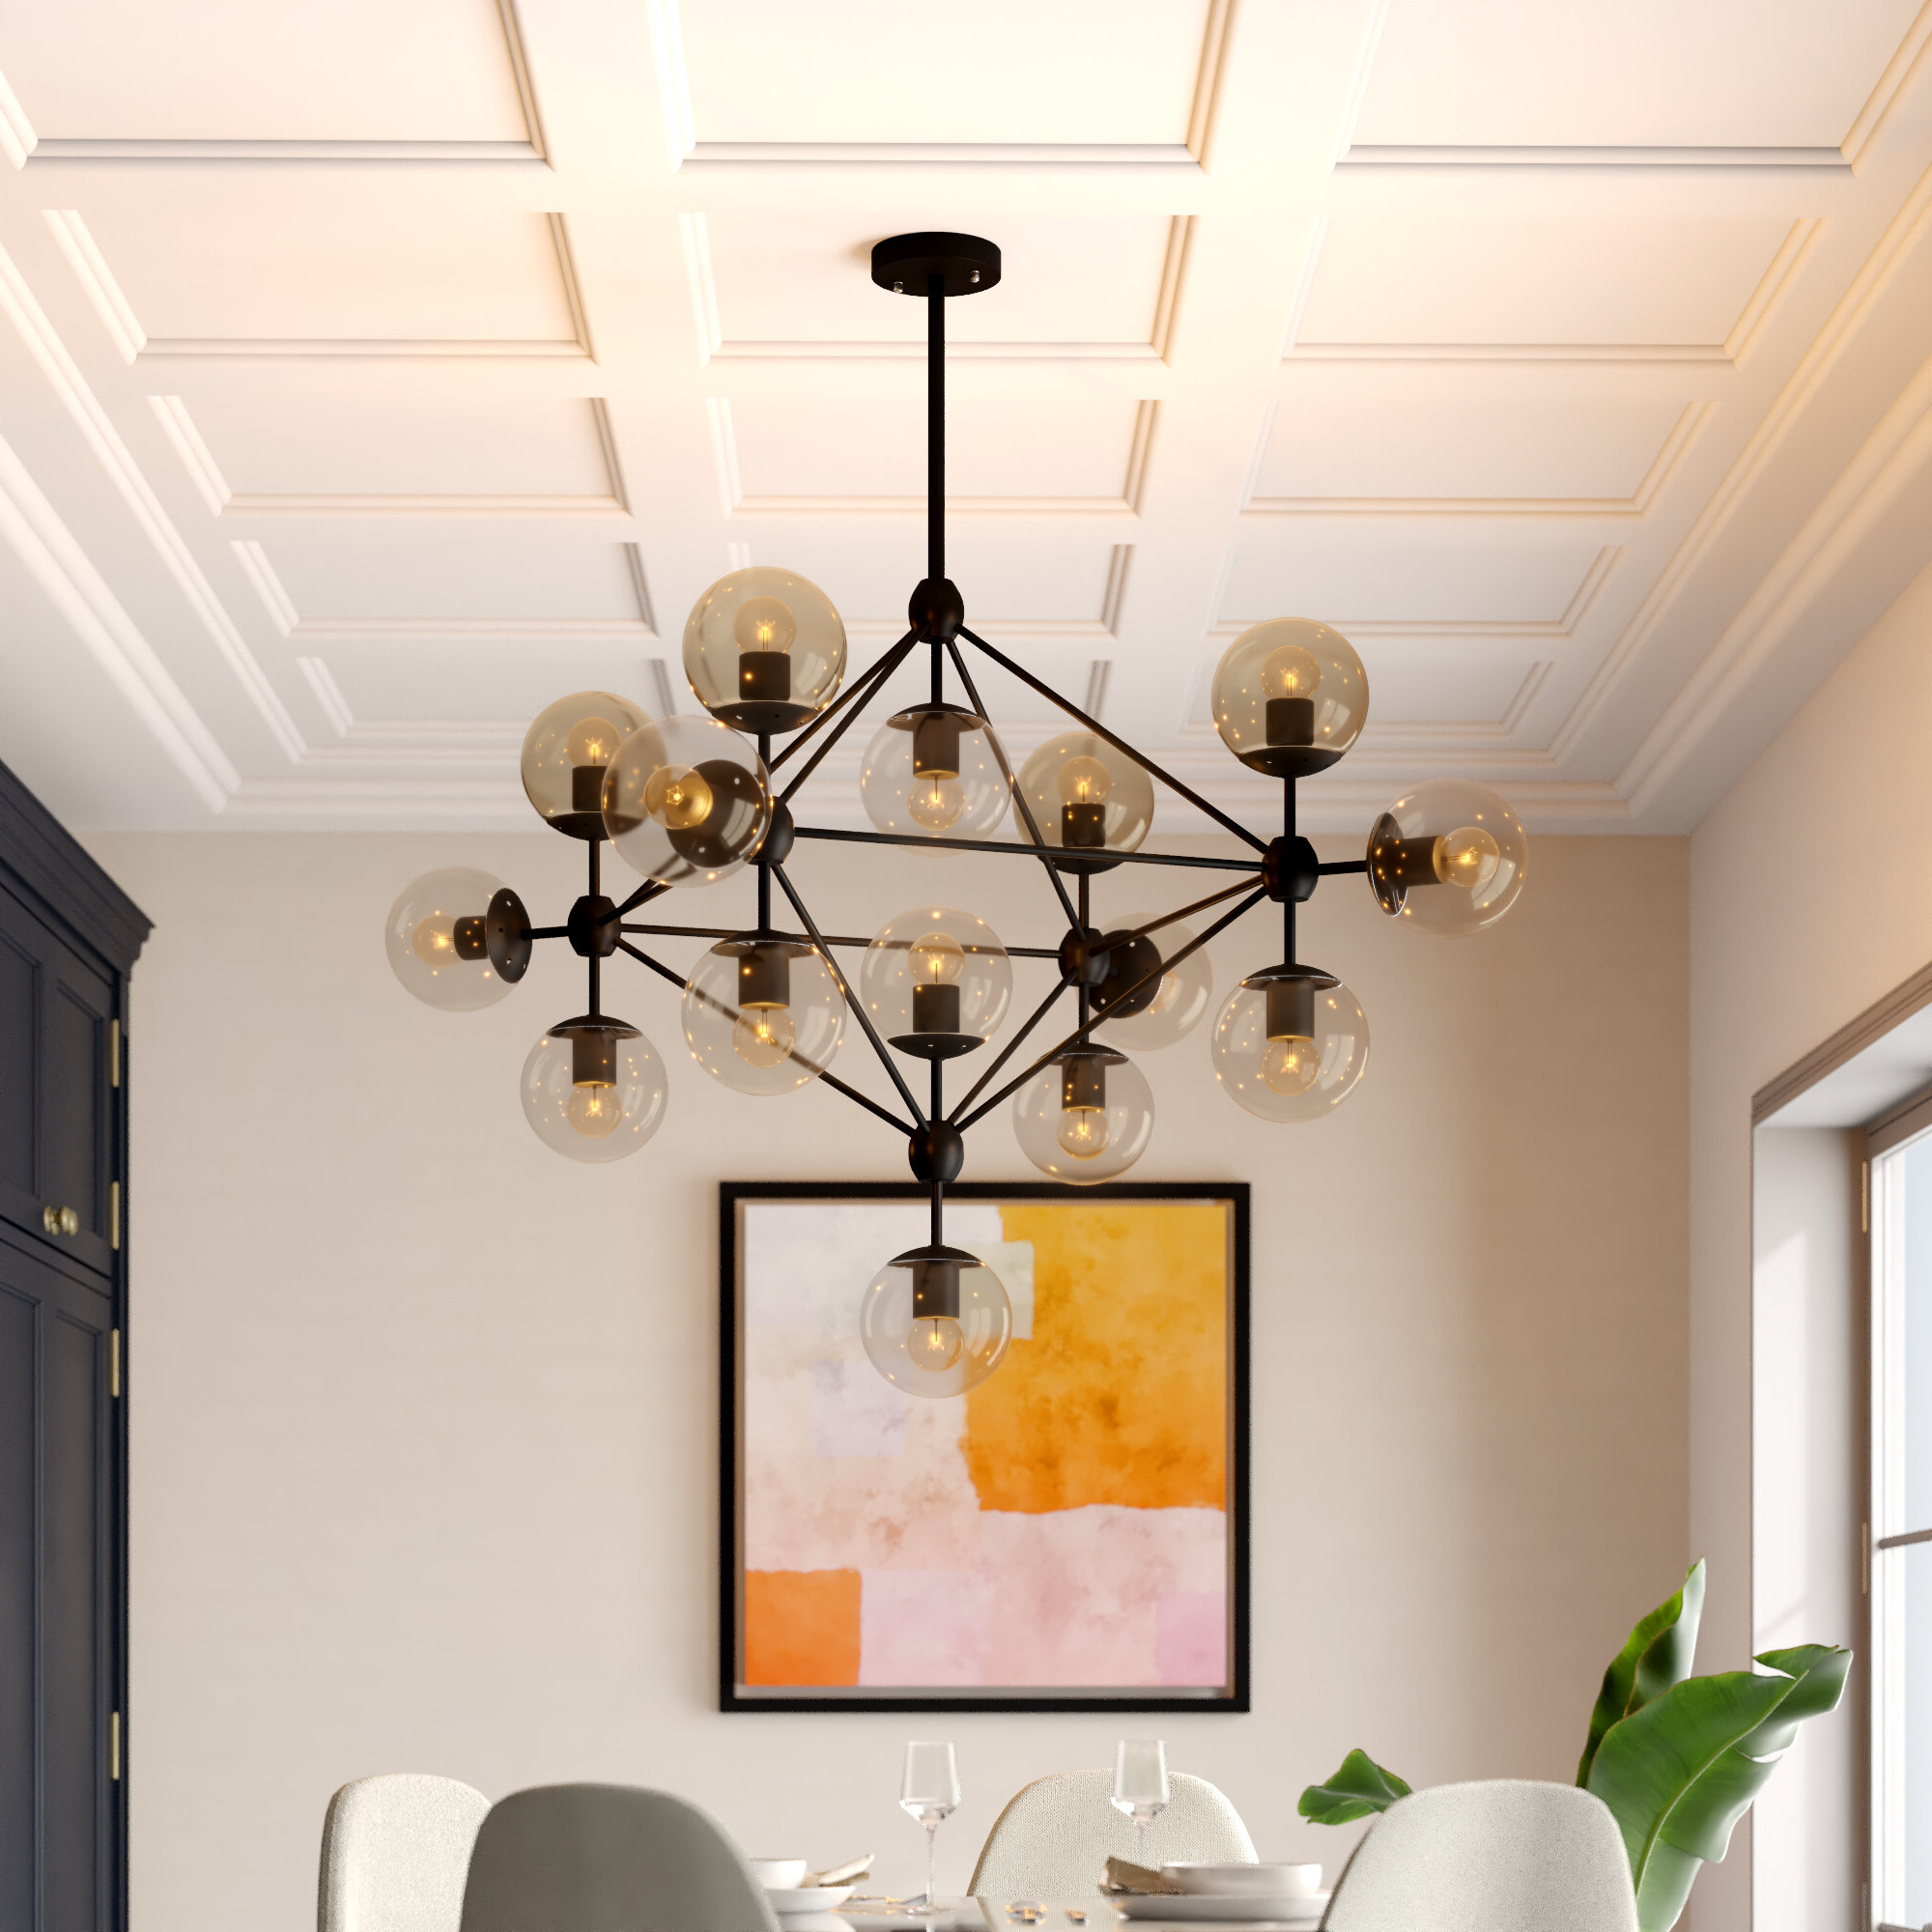 Everett 10 Light Sputnik Chandeliers With Most Up To Date Dortch 15 Light Sputnik Chandelier (Gallery 16 of 20)